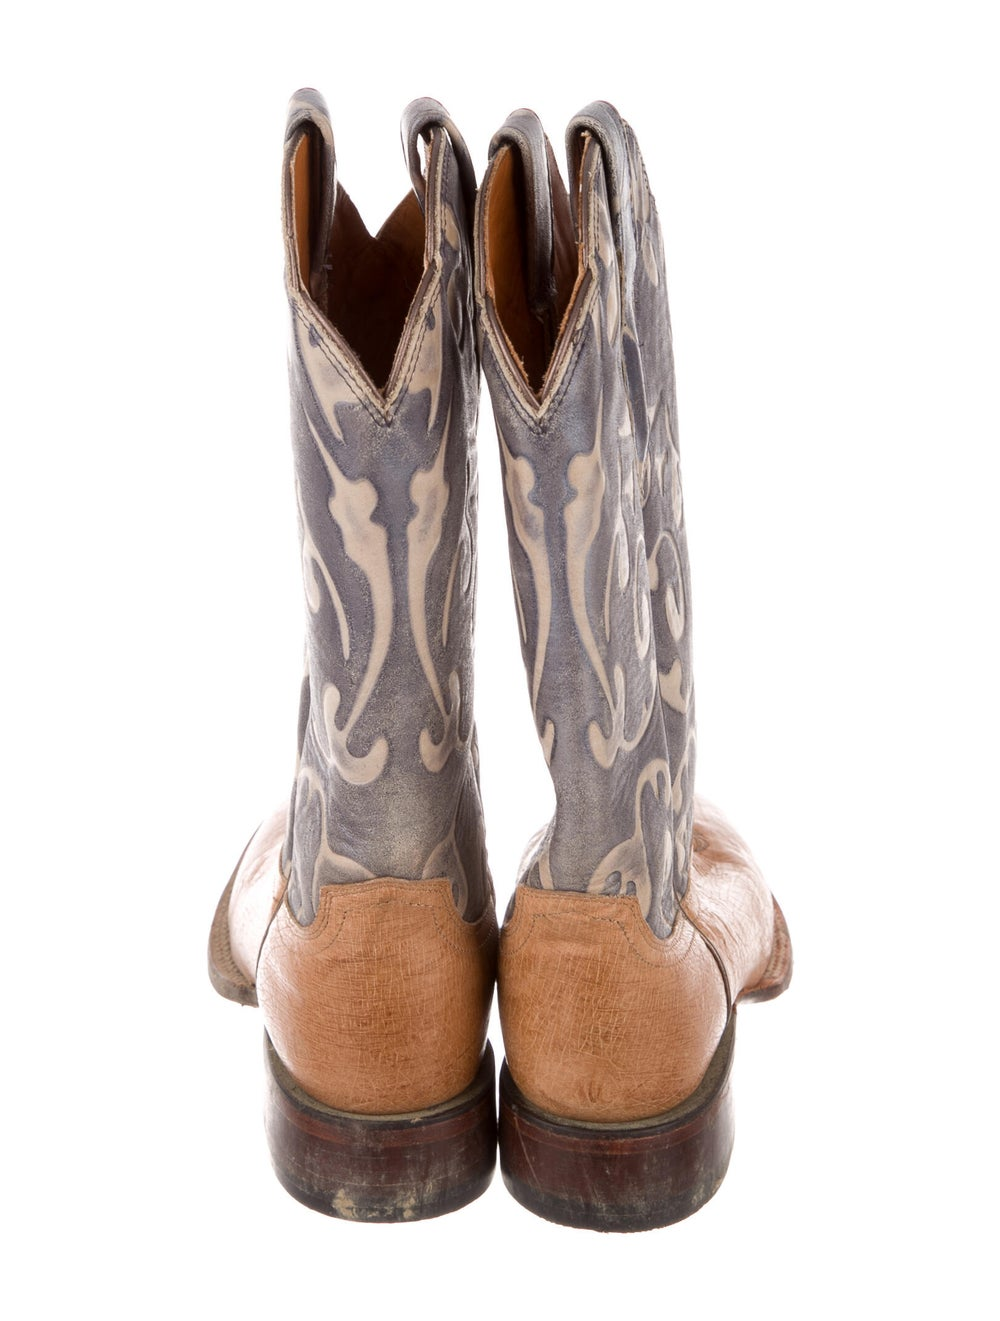 Lucchese Eel Skin Printed Western Boots - image 4